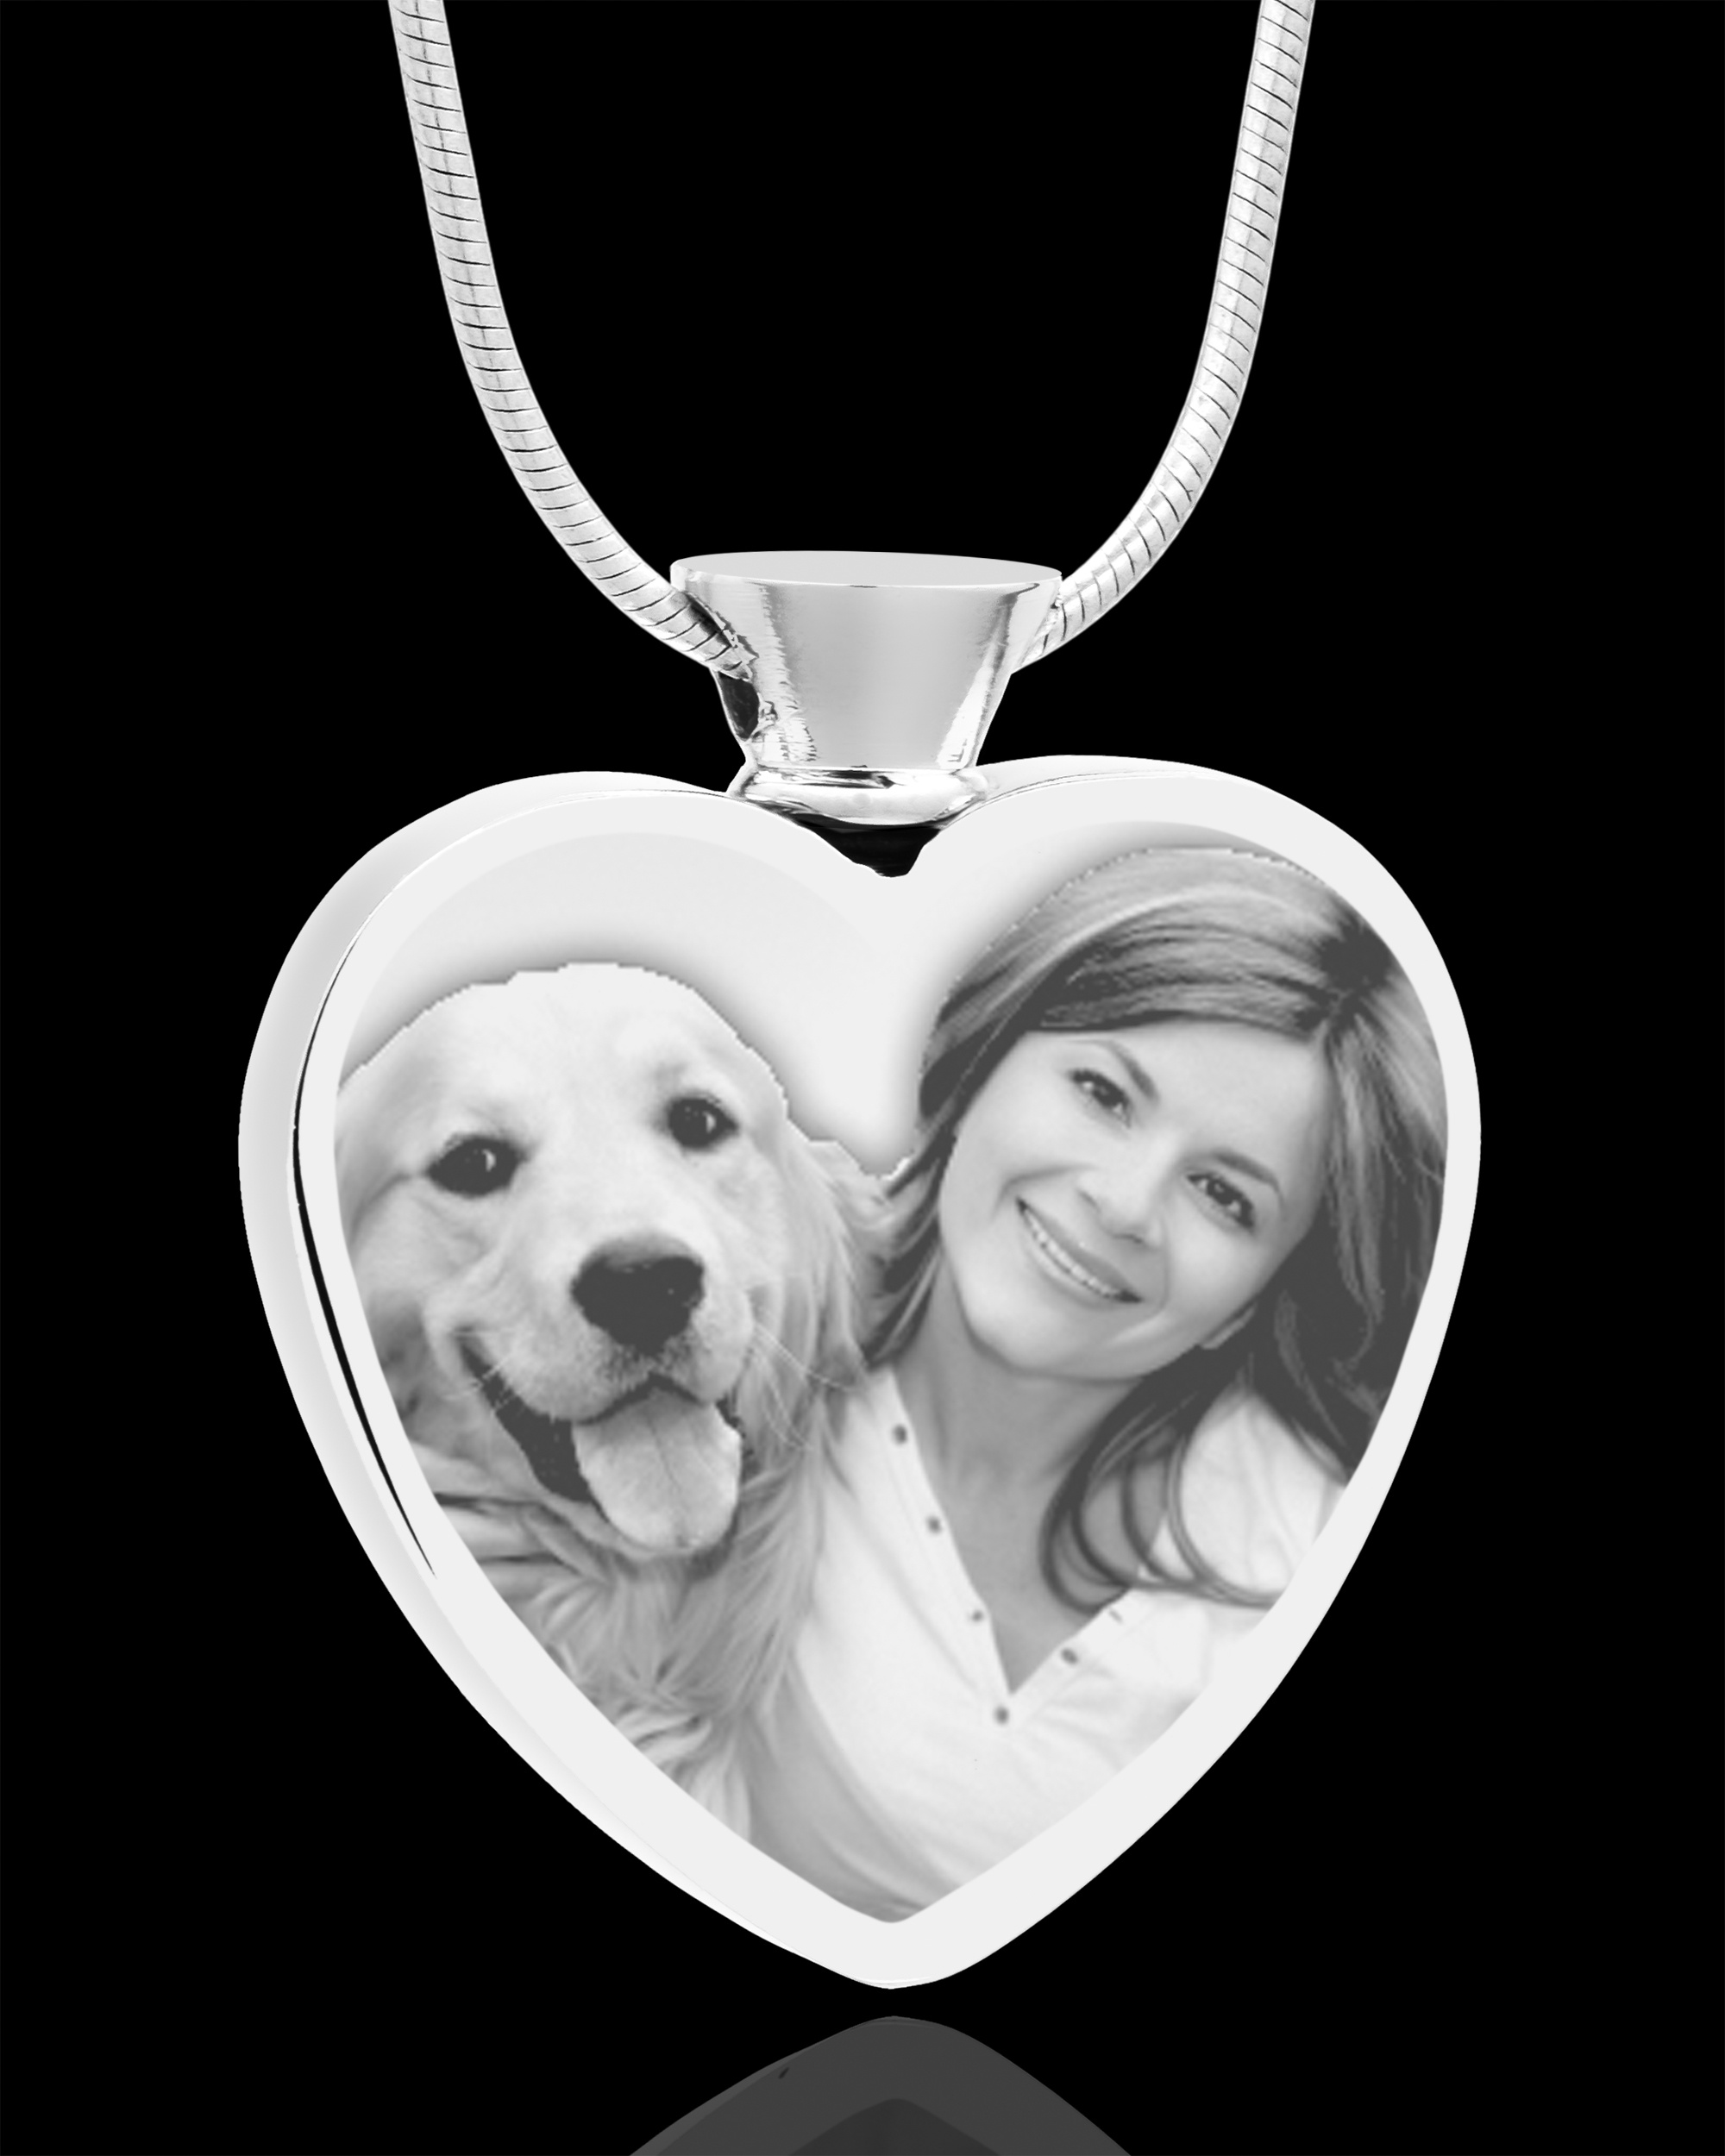 Jewelry Keepsakes81-3528Photo Eng Heart Stainless Crem Pet Pendant.jpg813